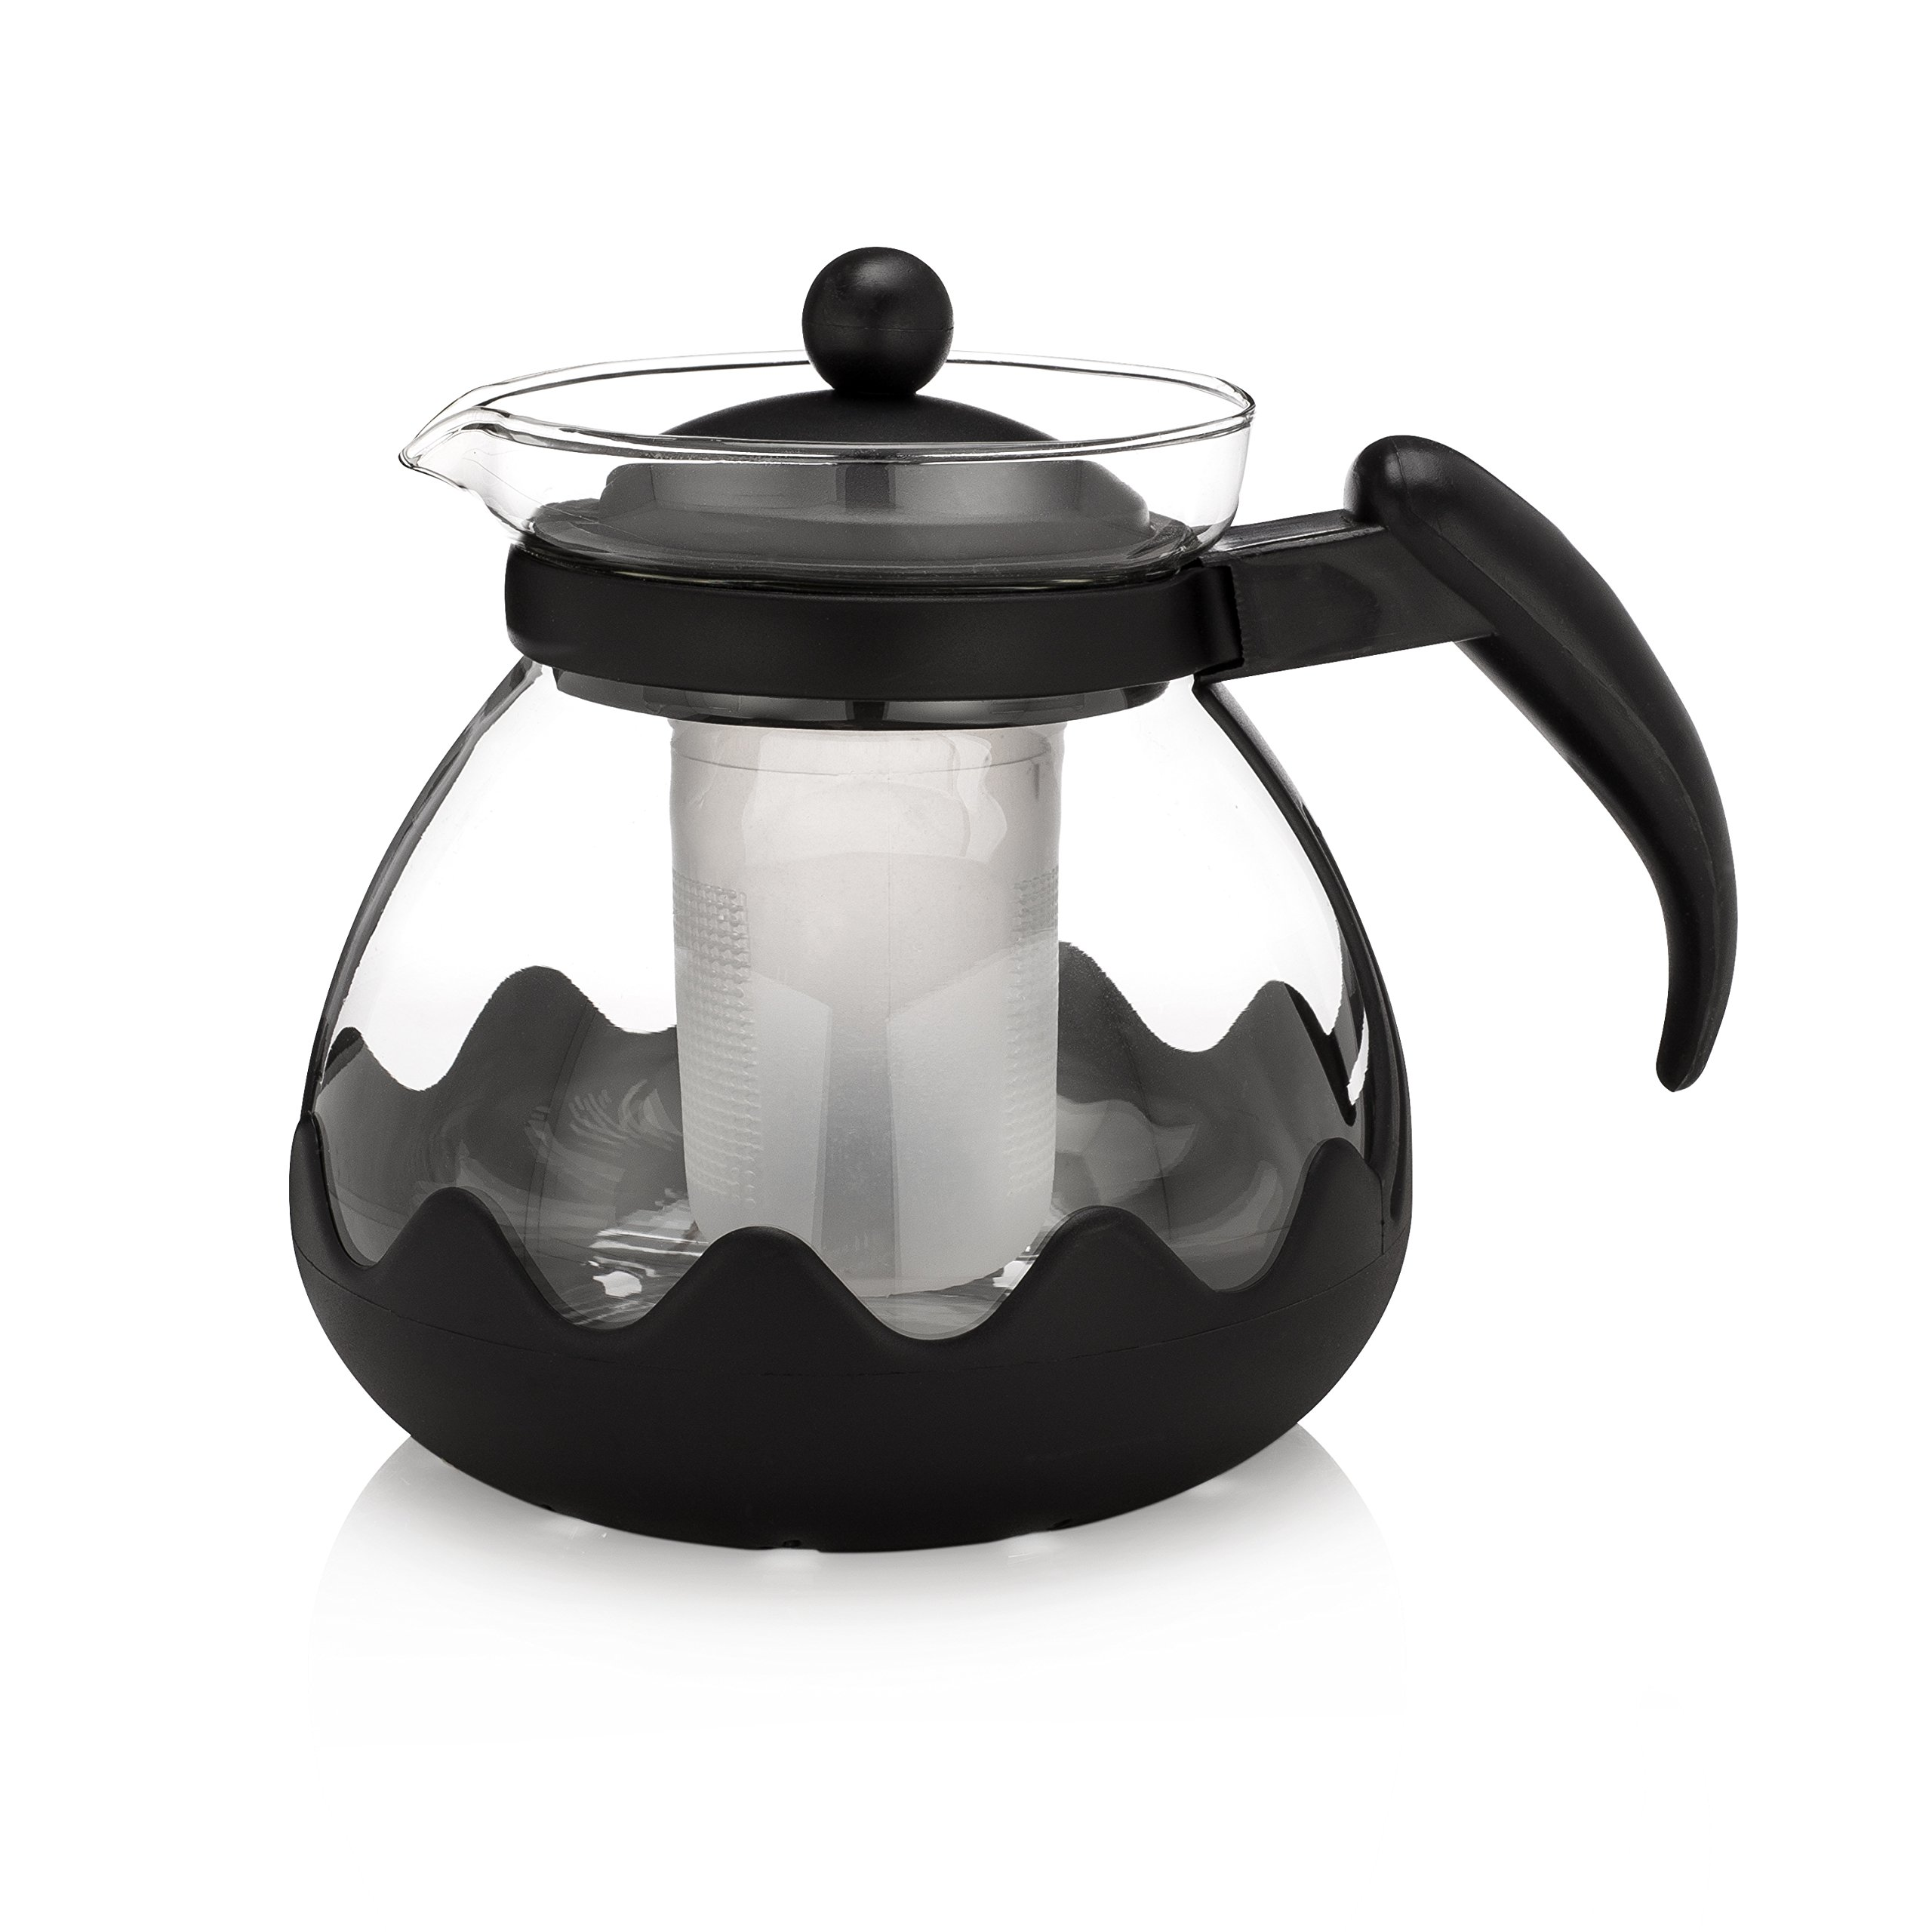 JUWA PREMIUM Glass Teapot with Removable Tea Infuser, Tea Kettle for Loose Tea or Green tea, 42 Oz / 1240 ml Black & Flower Tea Maker